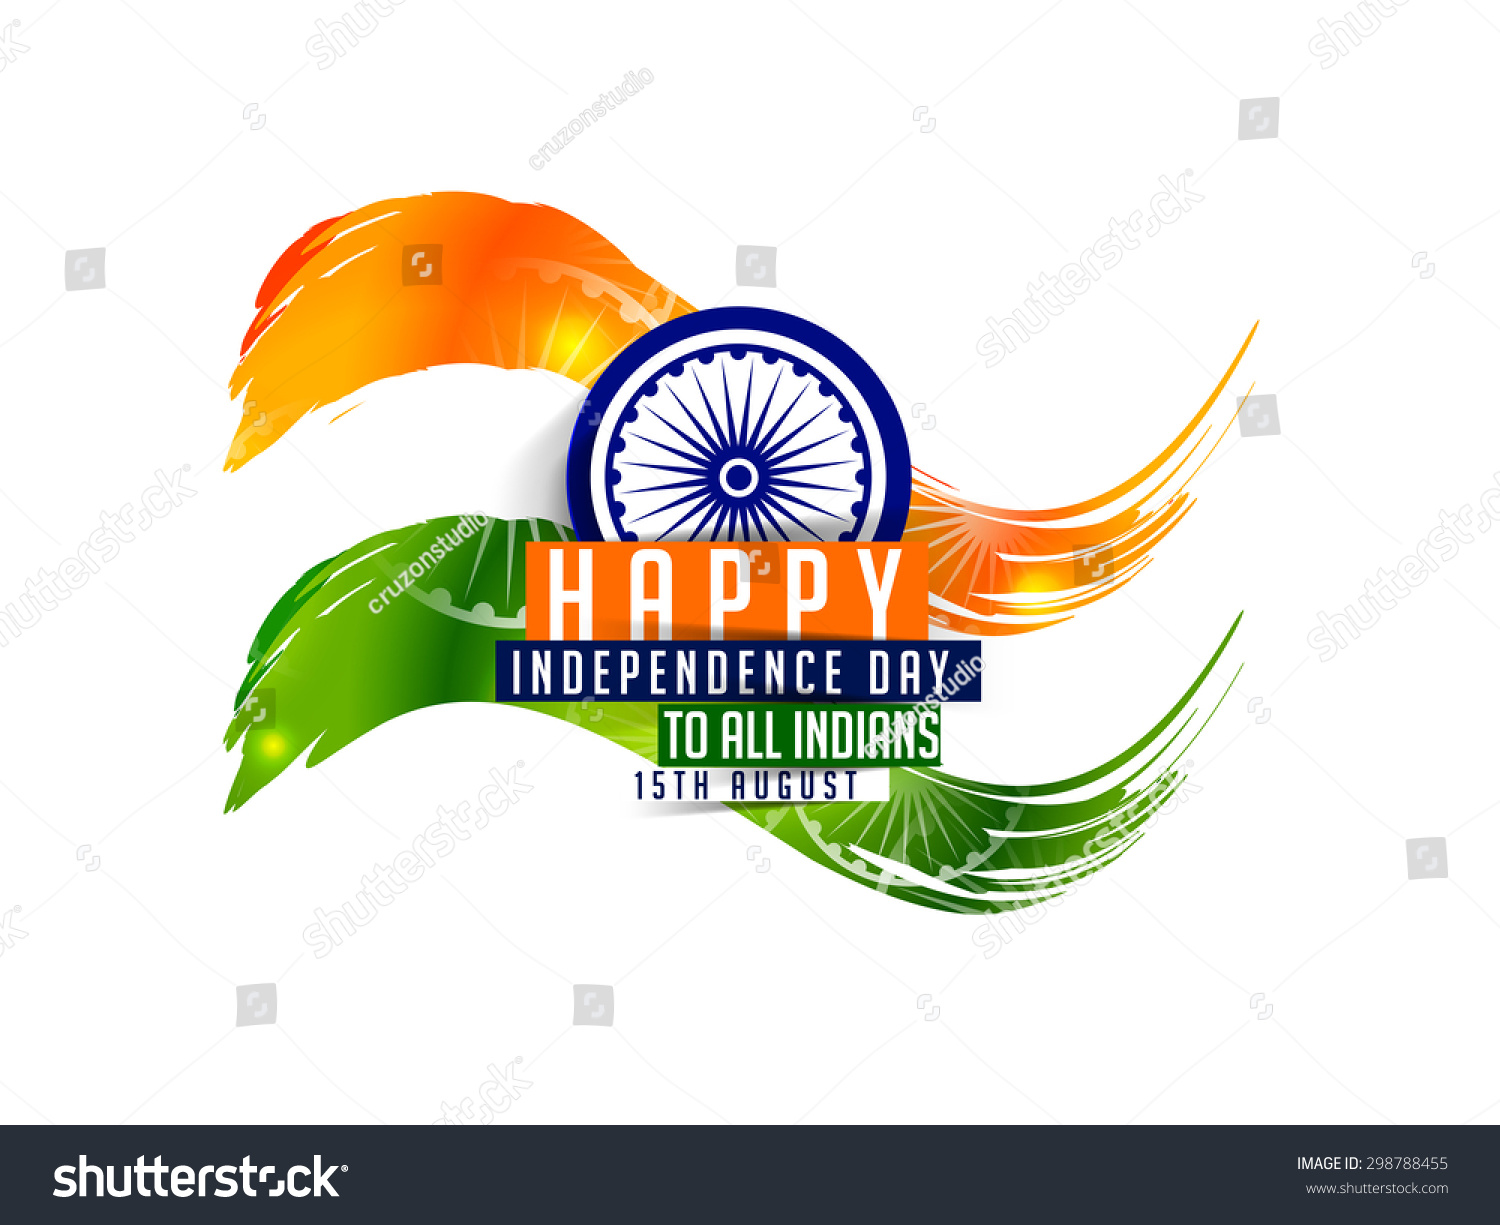 Creative Watercolor Indian Flag Background For Indian: Indian Flag Color Creative Abstract Background Stock